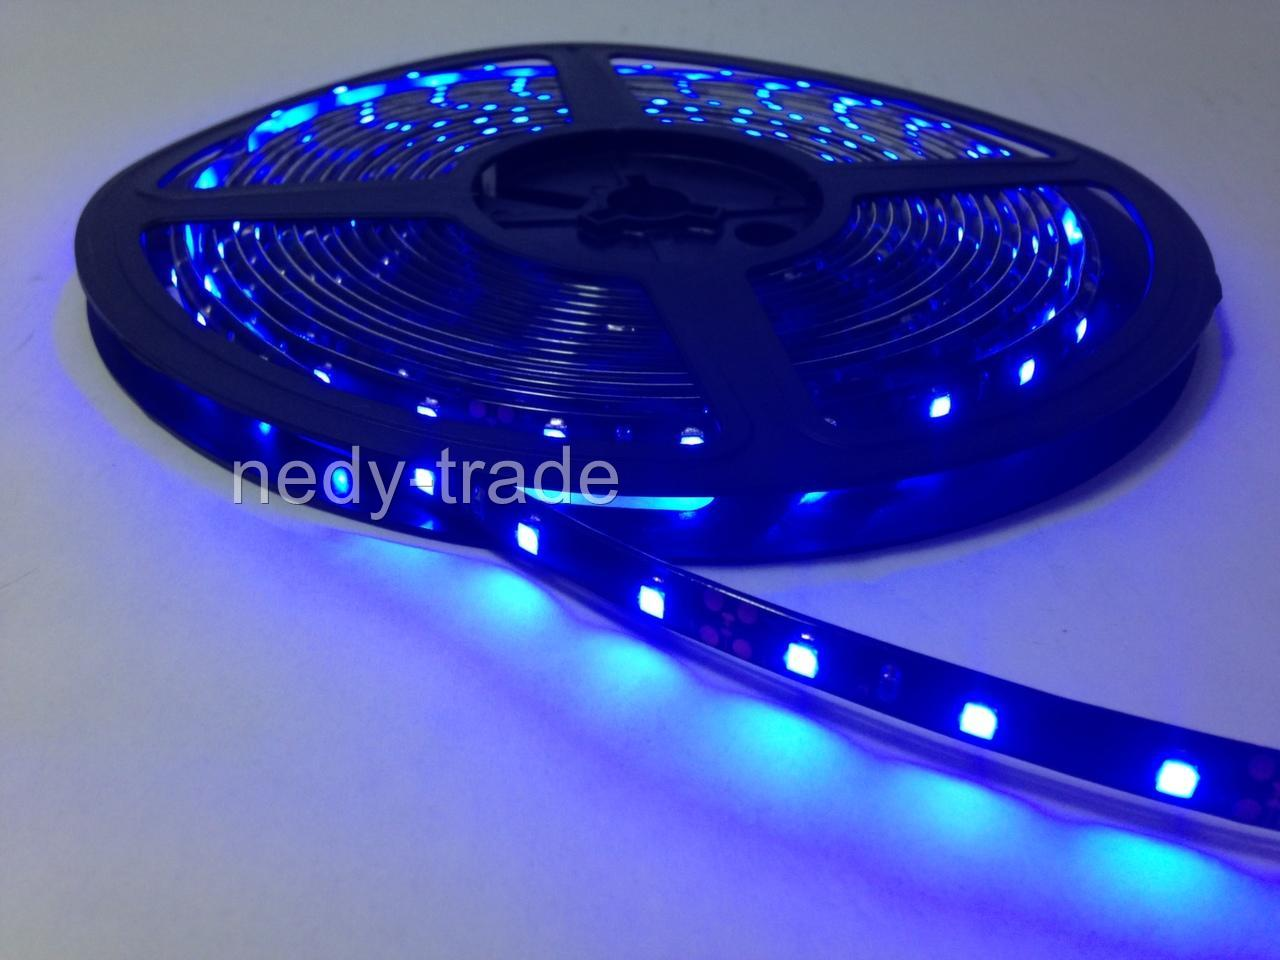 24v led leiste blau wasserdicht 5m 300 led streifen strip lichter auto lkw kfz ebay. Black Bedroom Furniture Sets. Home Design Ideas